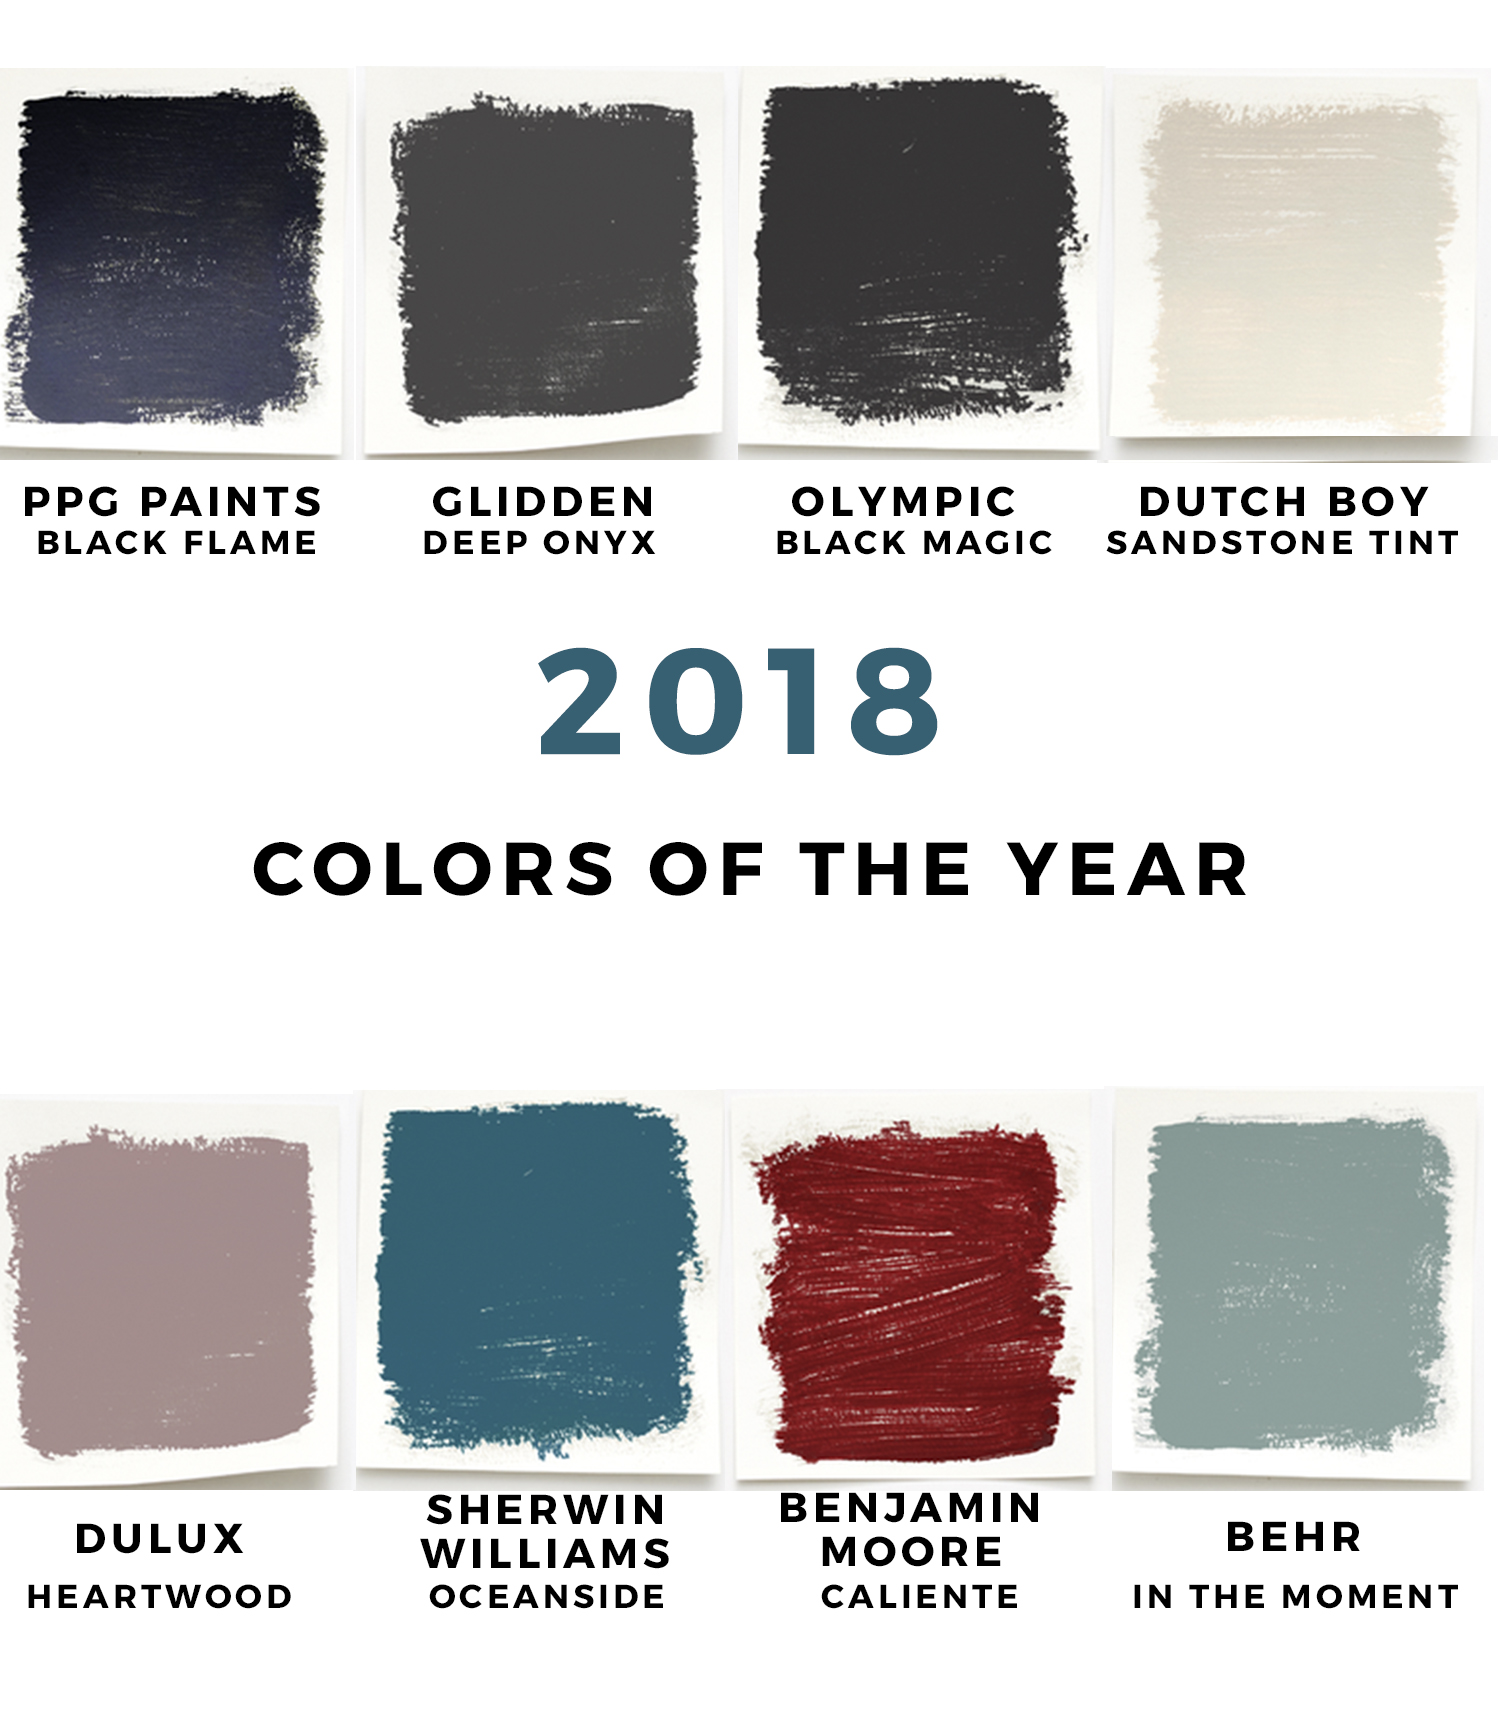 2018 Home Decor Color Trends 2018 Home Decor Trends Sarasota Homes